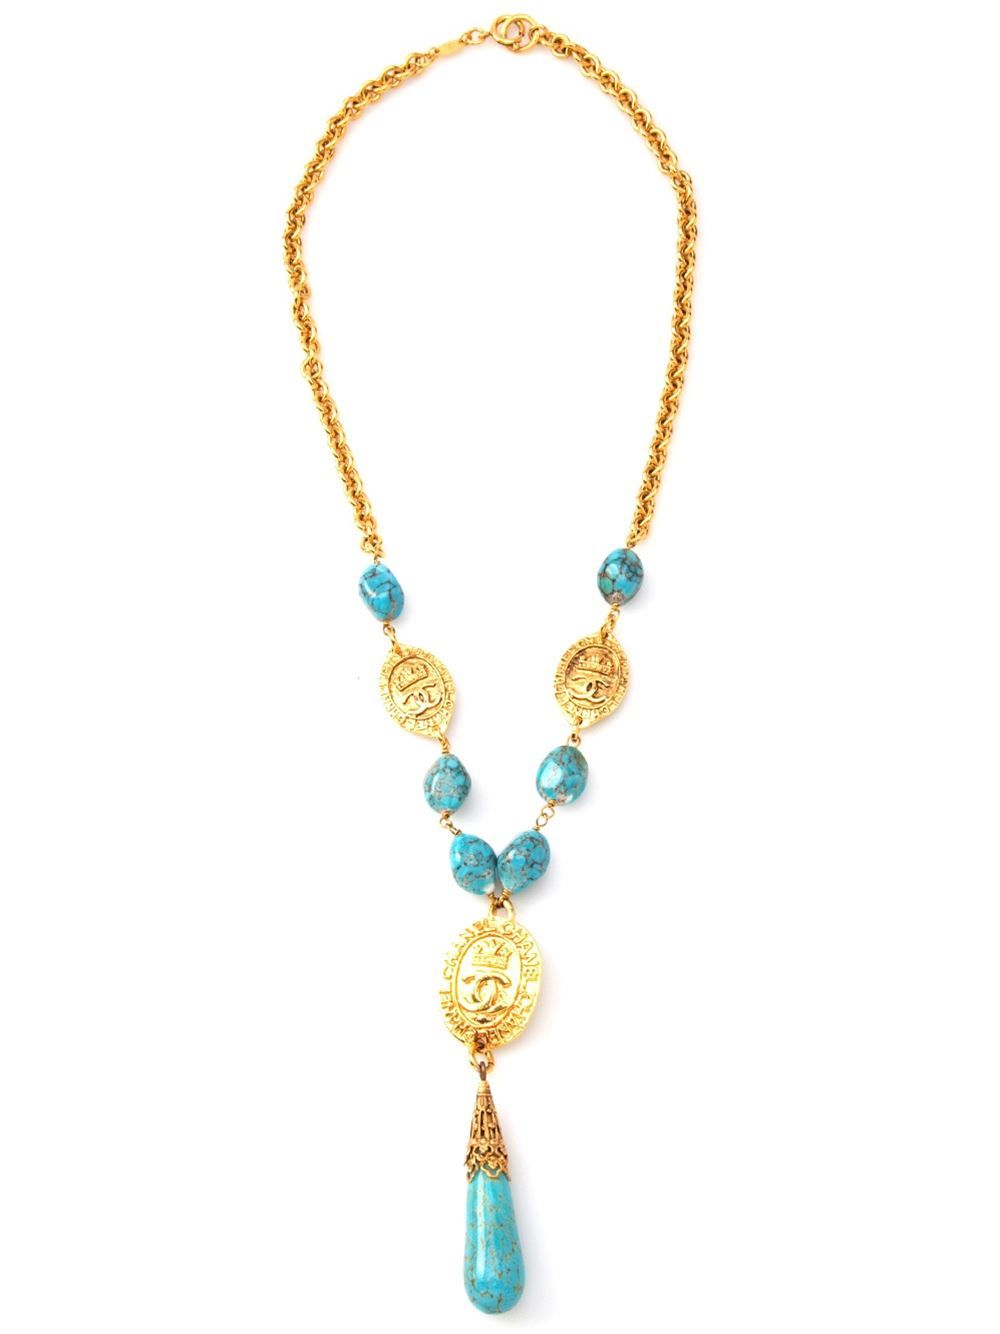 Gold tone metal turquoise and coin necklace from Chanel Vintage featuring turquoise stones, logo branded coin pendants and a spring ring fastening.